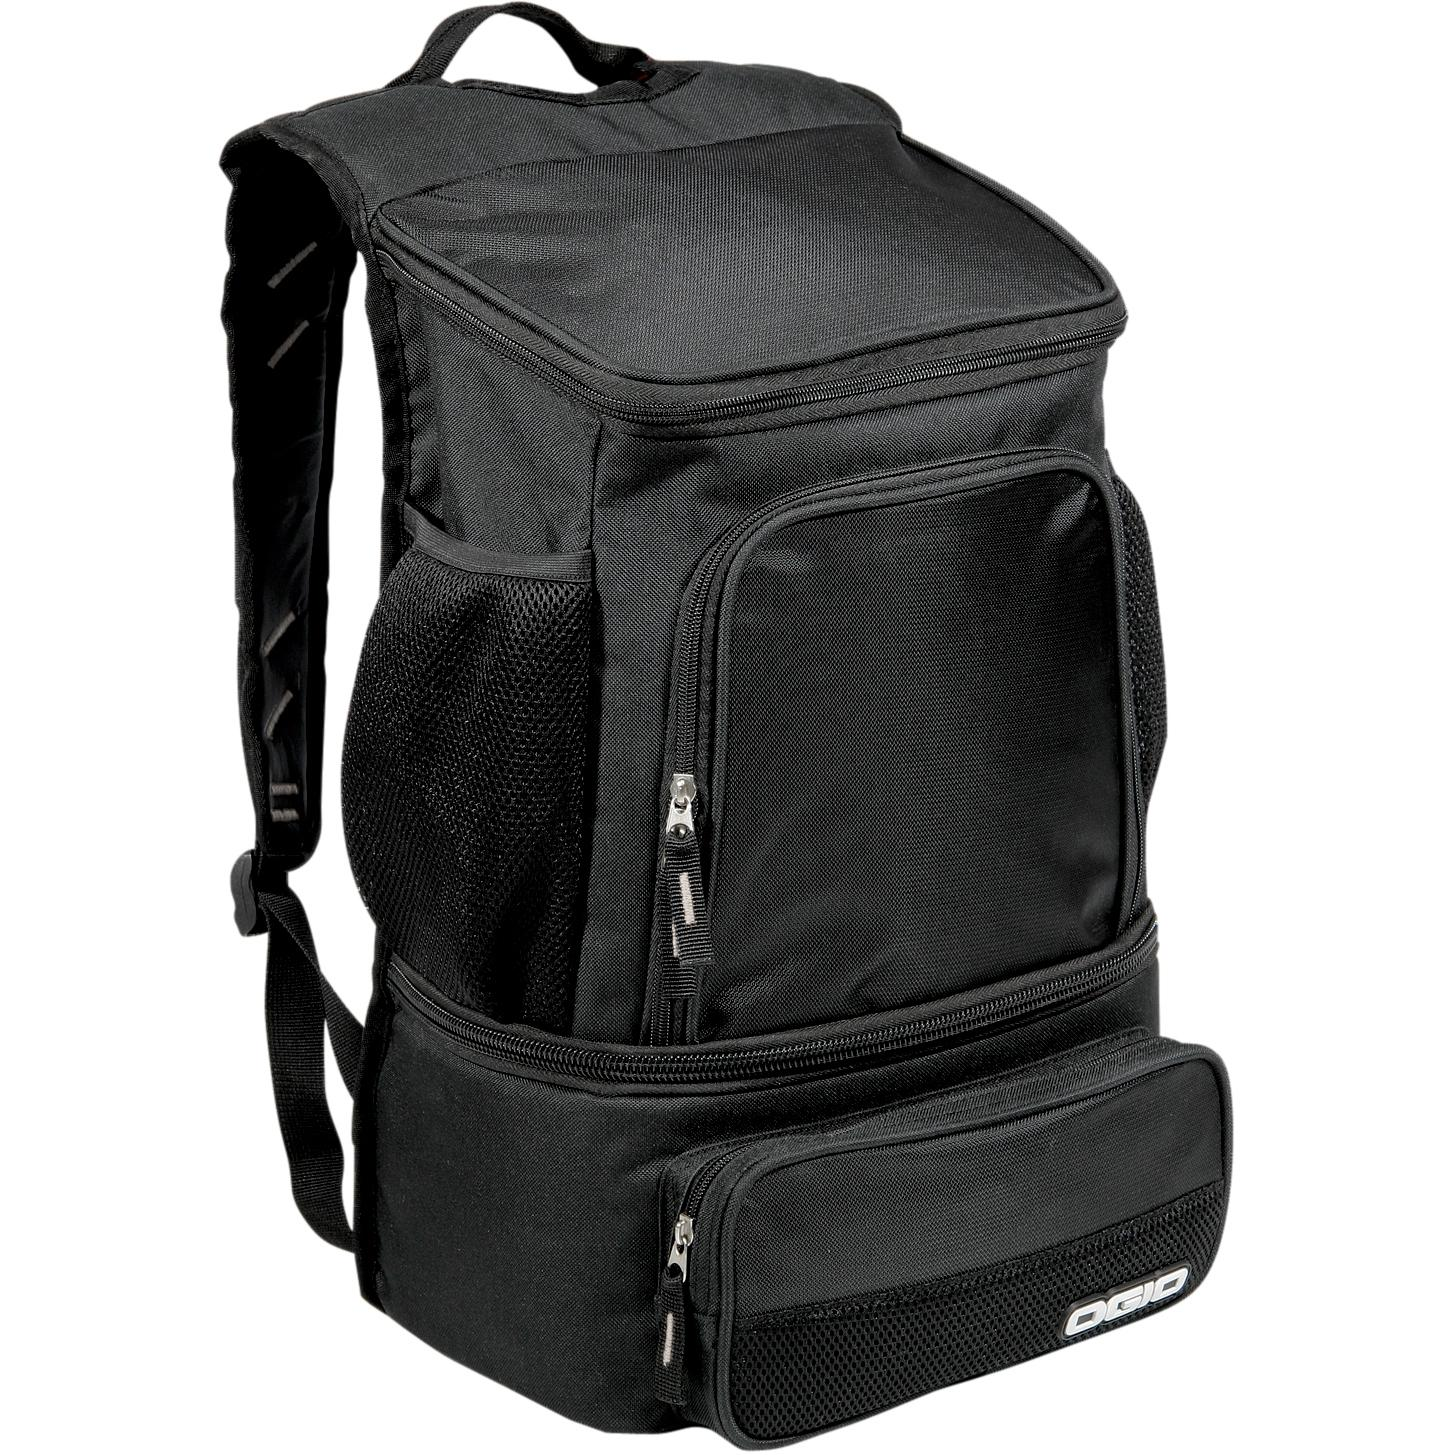 OGIO Freezer Cooler Bag - Black